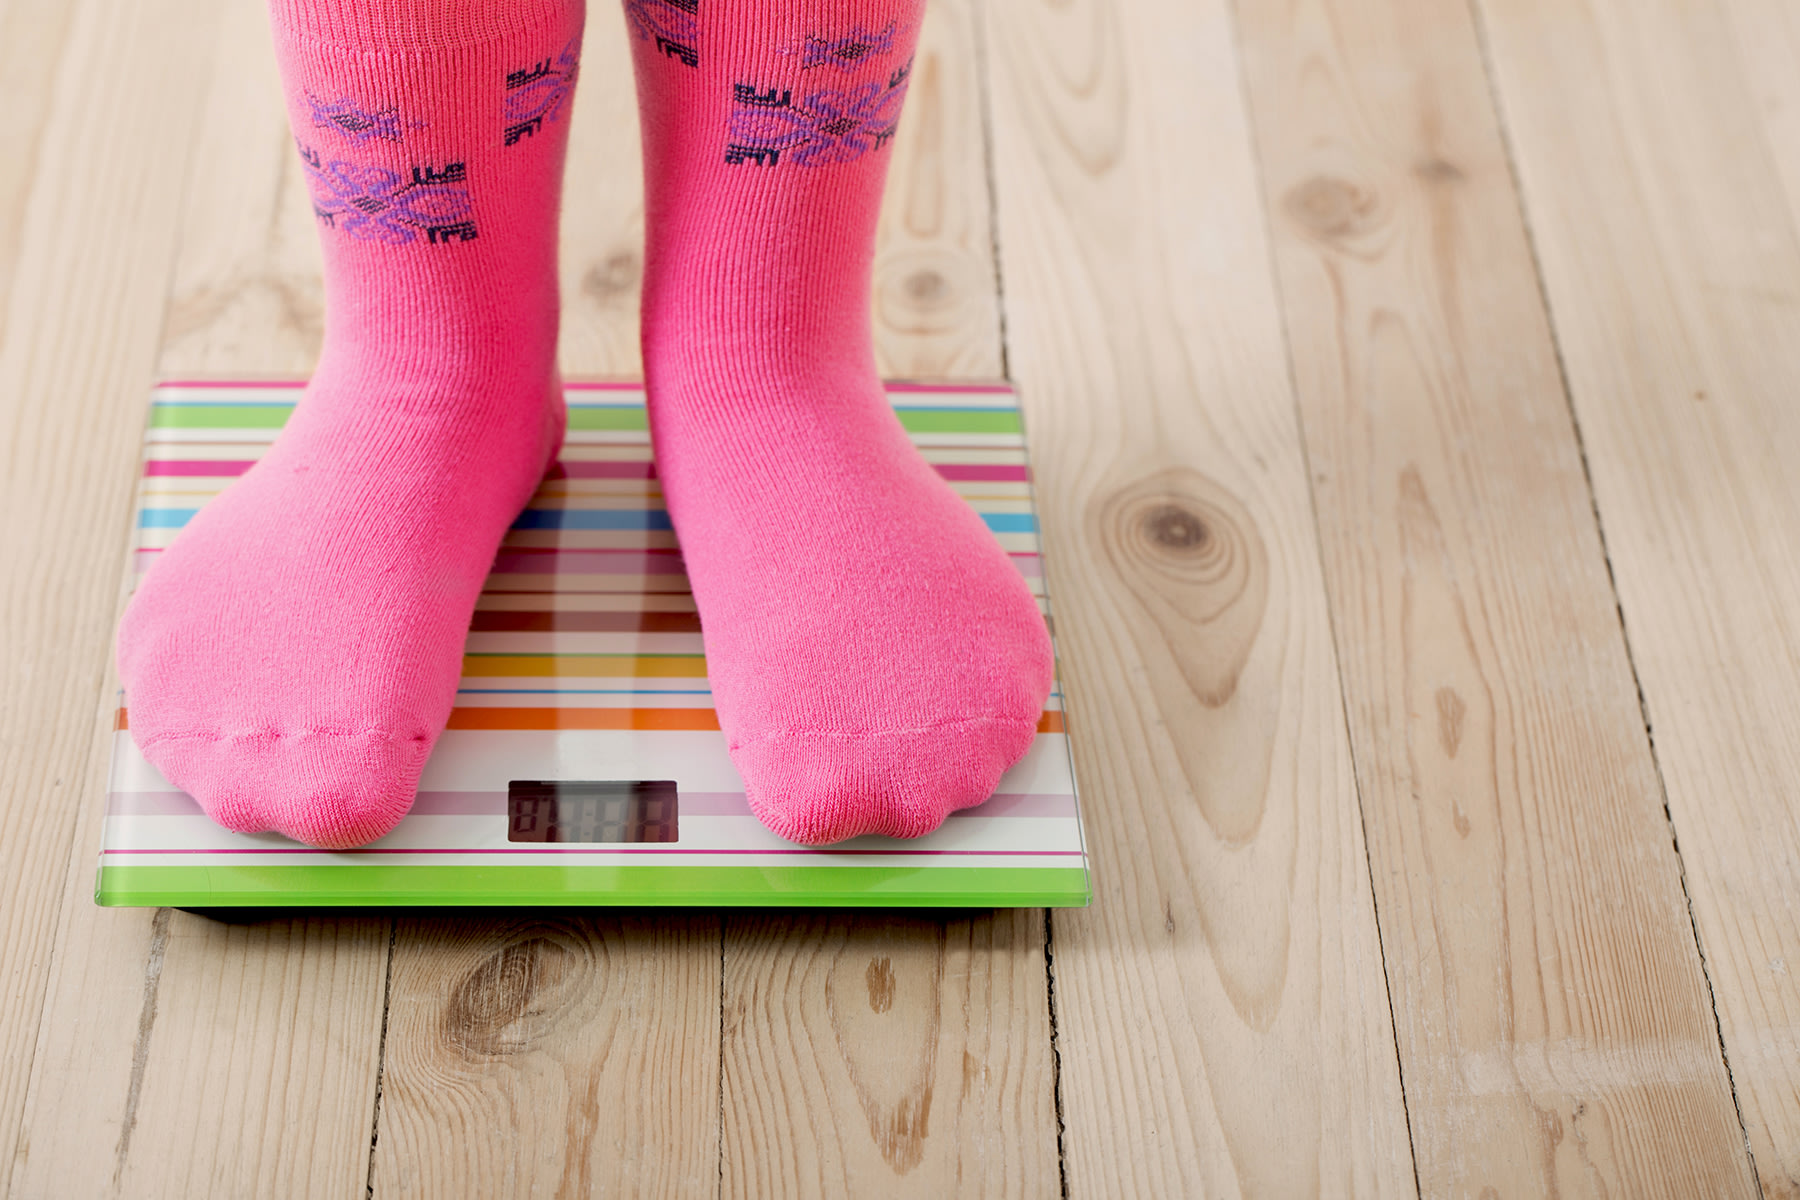 Gut bacteria differs in obese youth